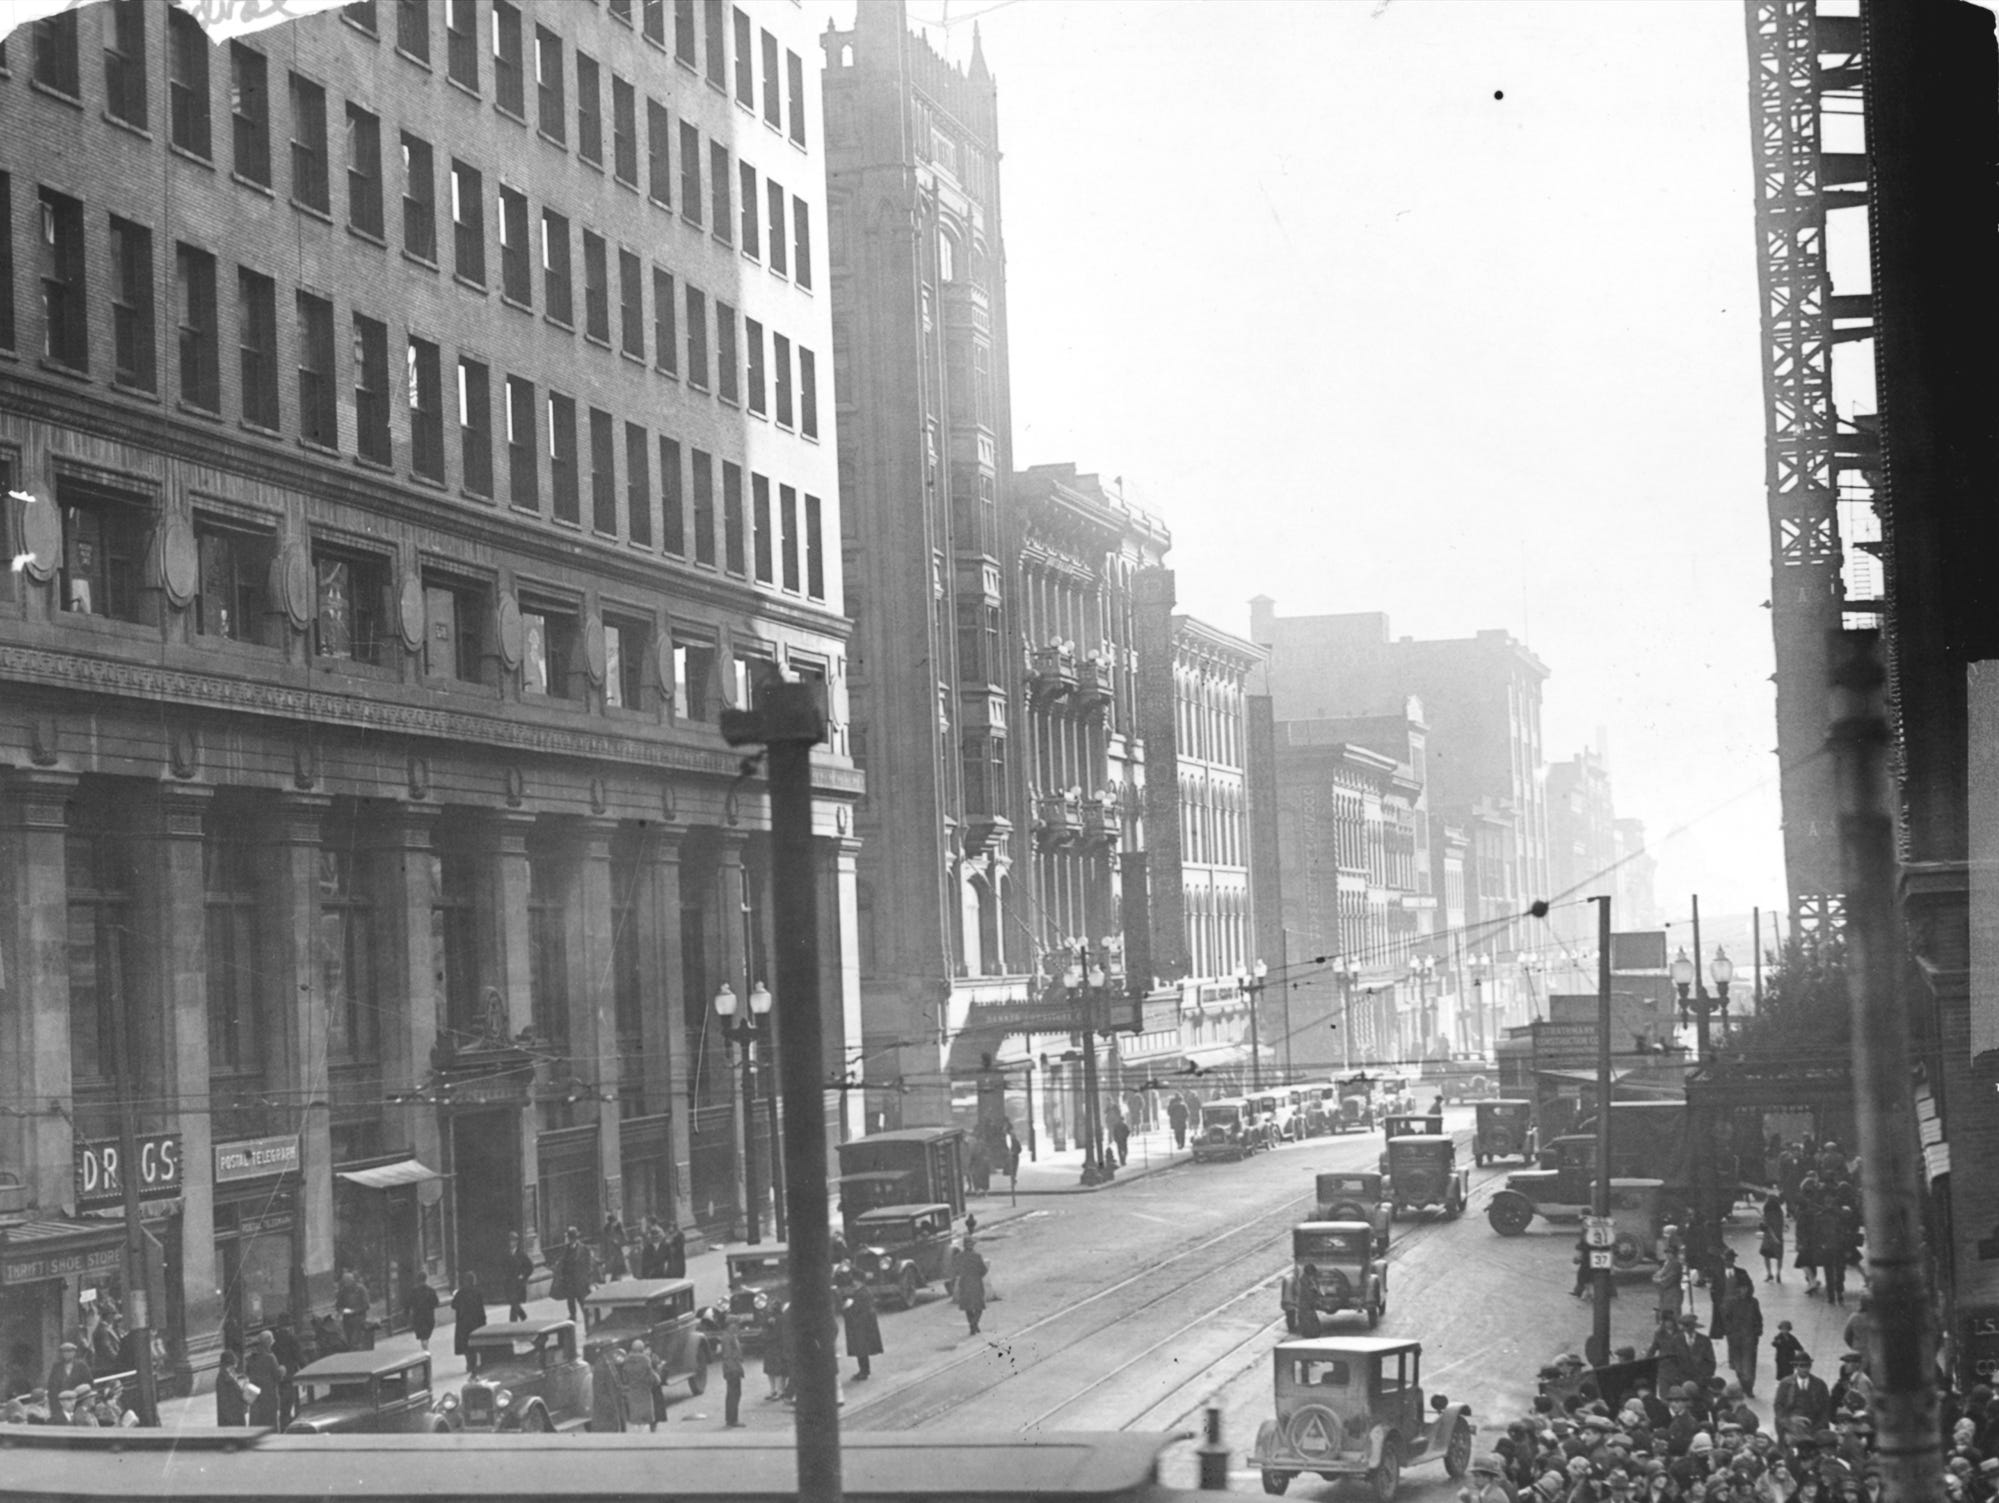 South Meridian street scene from Monument Circle on Dec. 31, 1928.